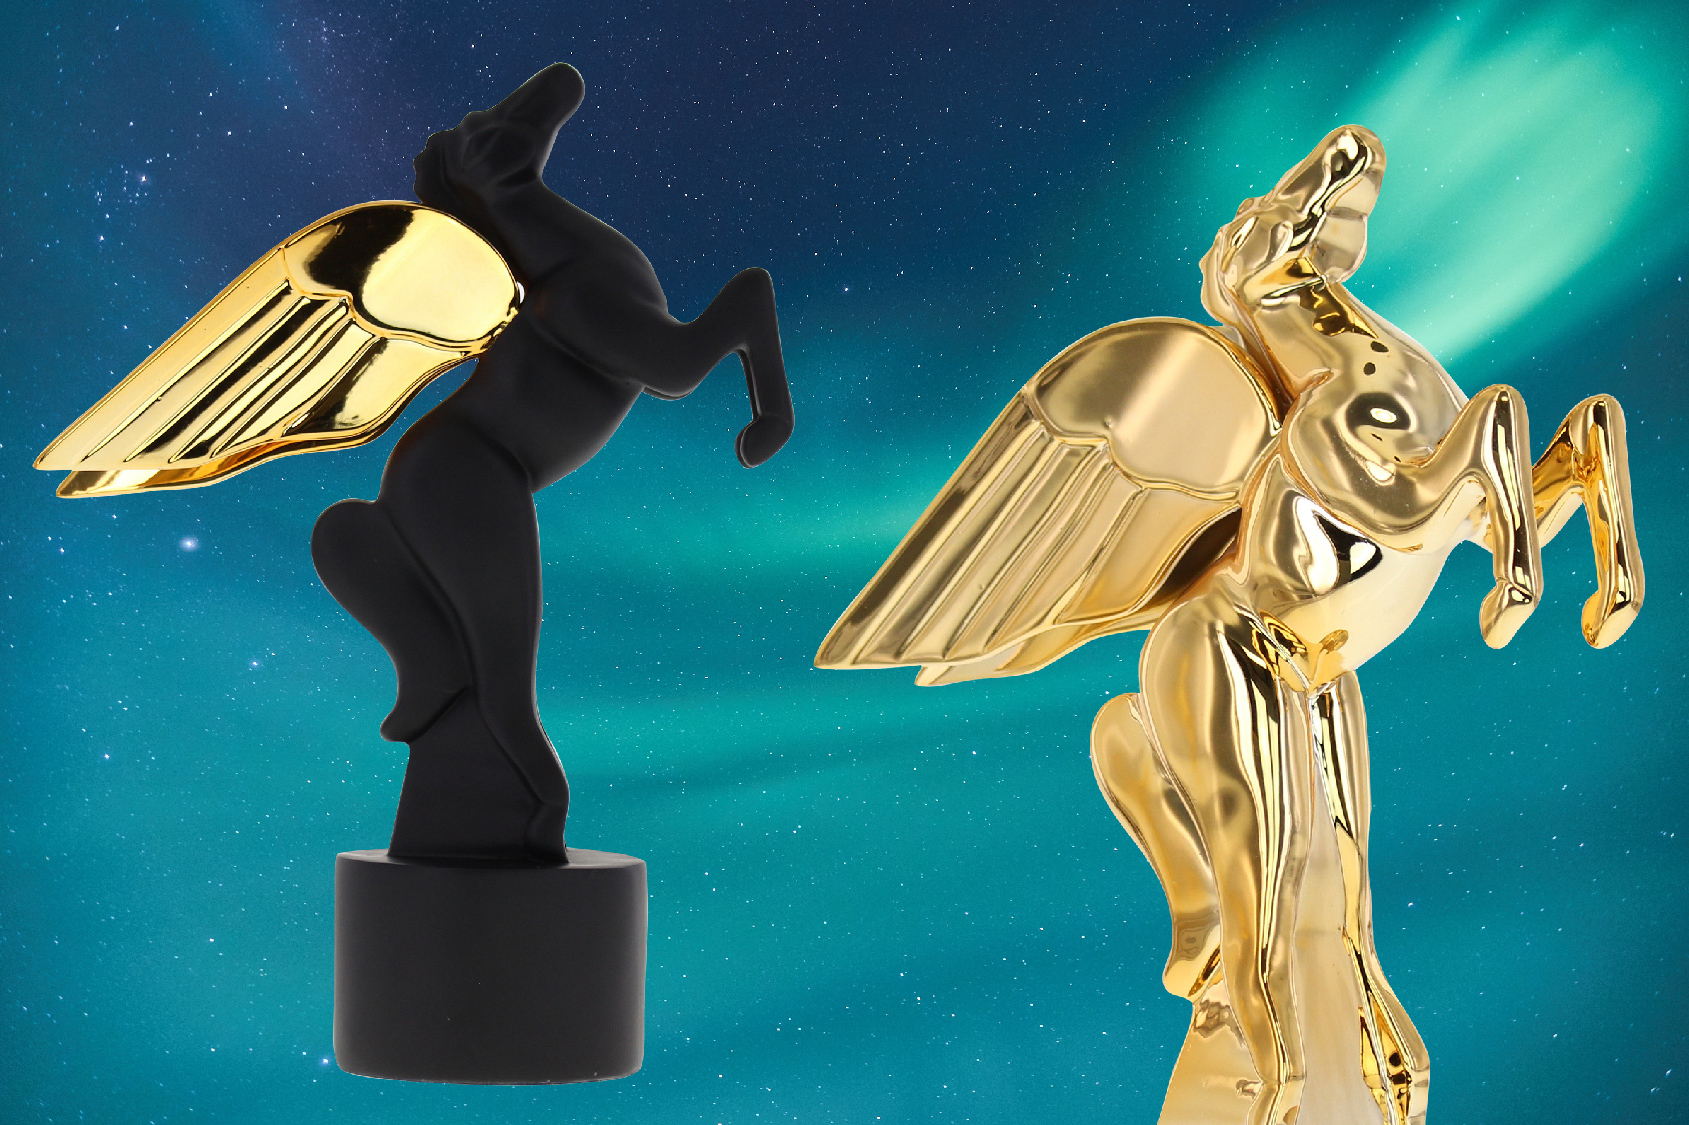 Two custom pegasus trophies flying into the night sky